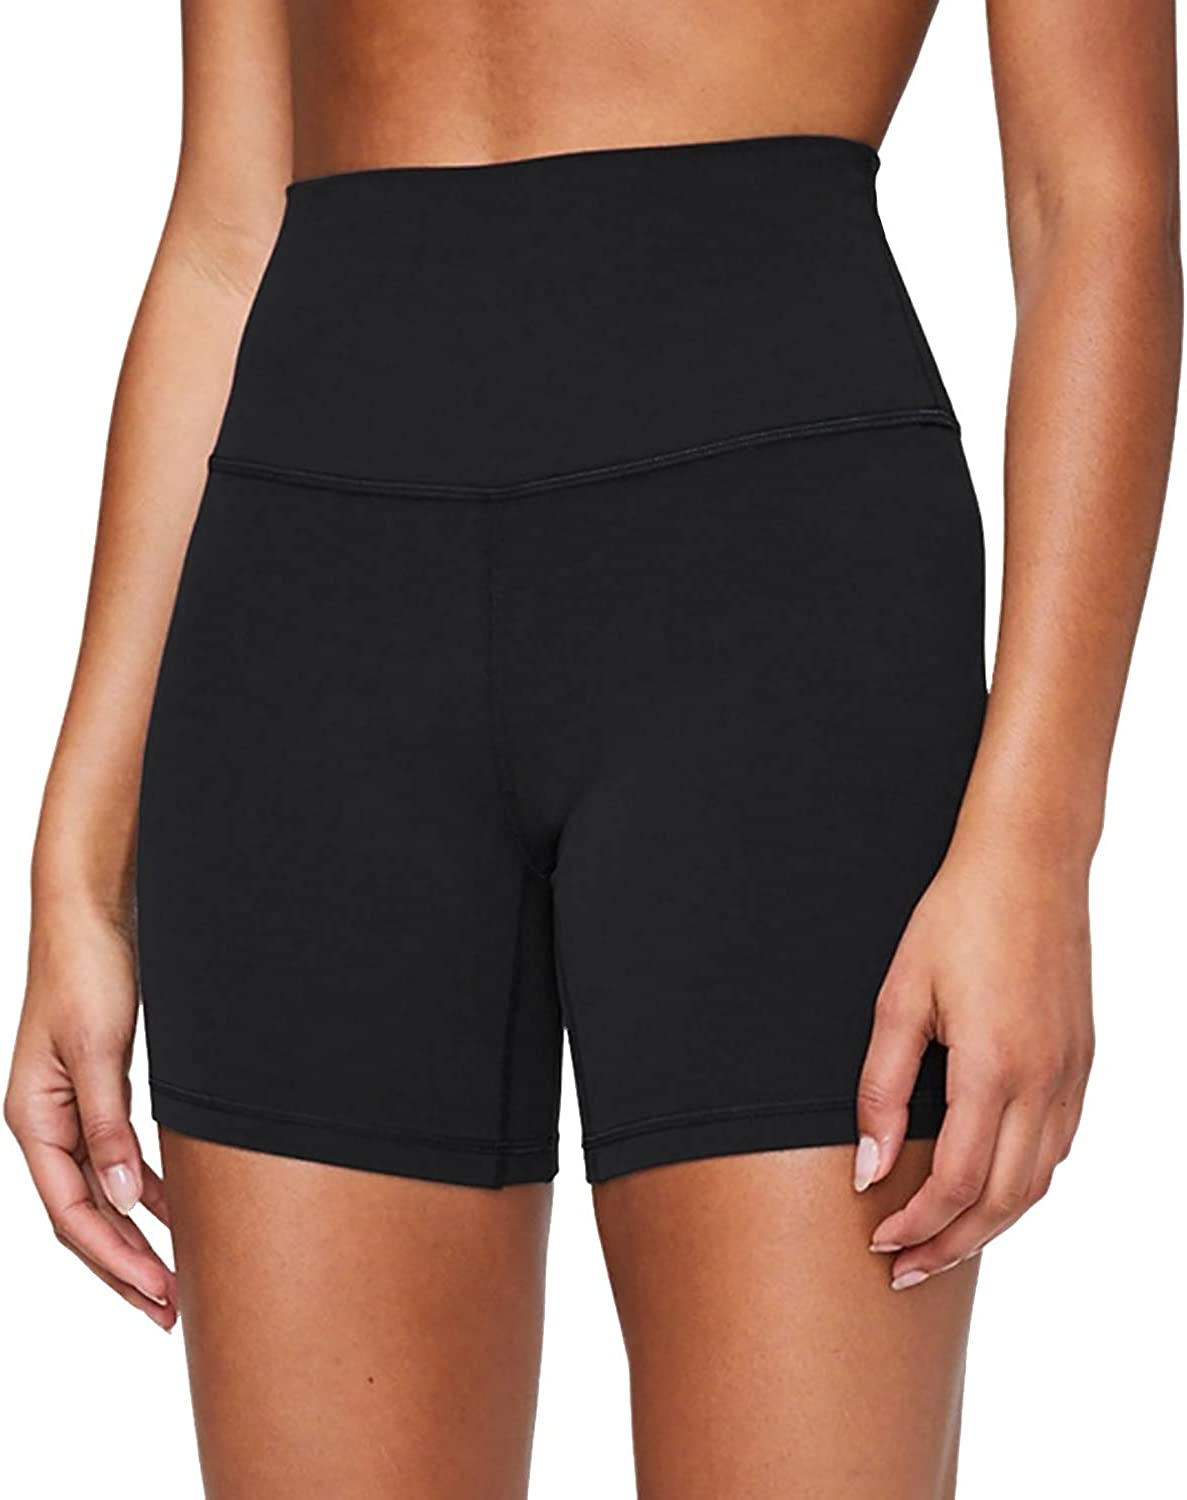 yeuG Workout Shorts for Women with Pockets Biker Shorts for Women High Waisted Yoga Shorts Athletic Running Shorts